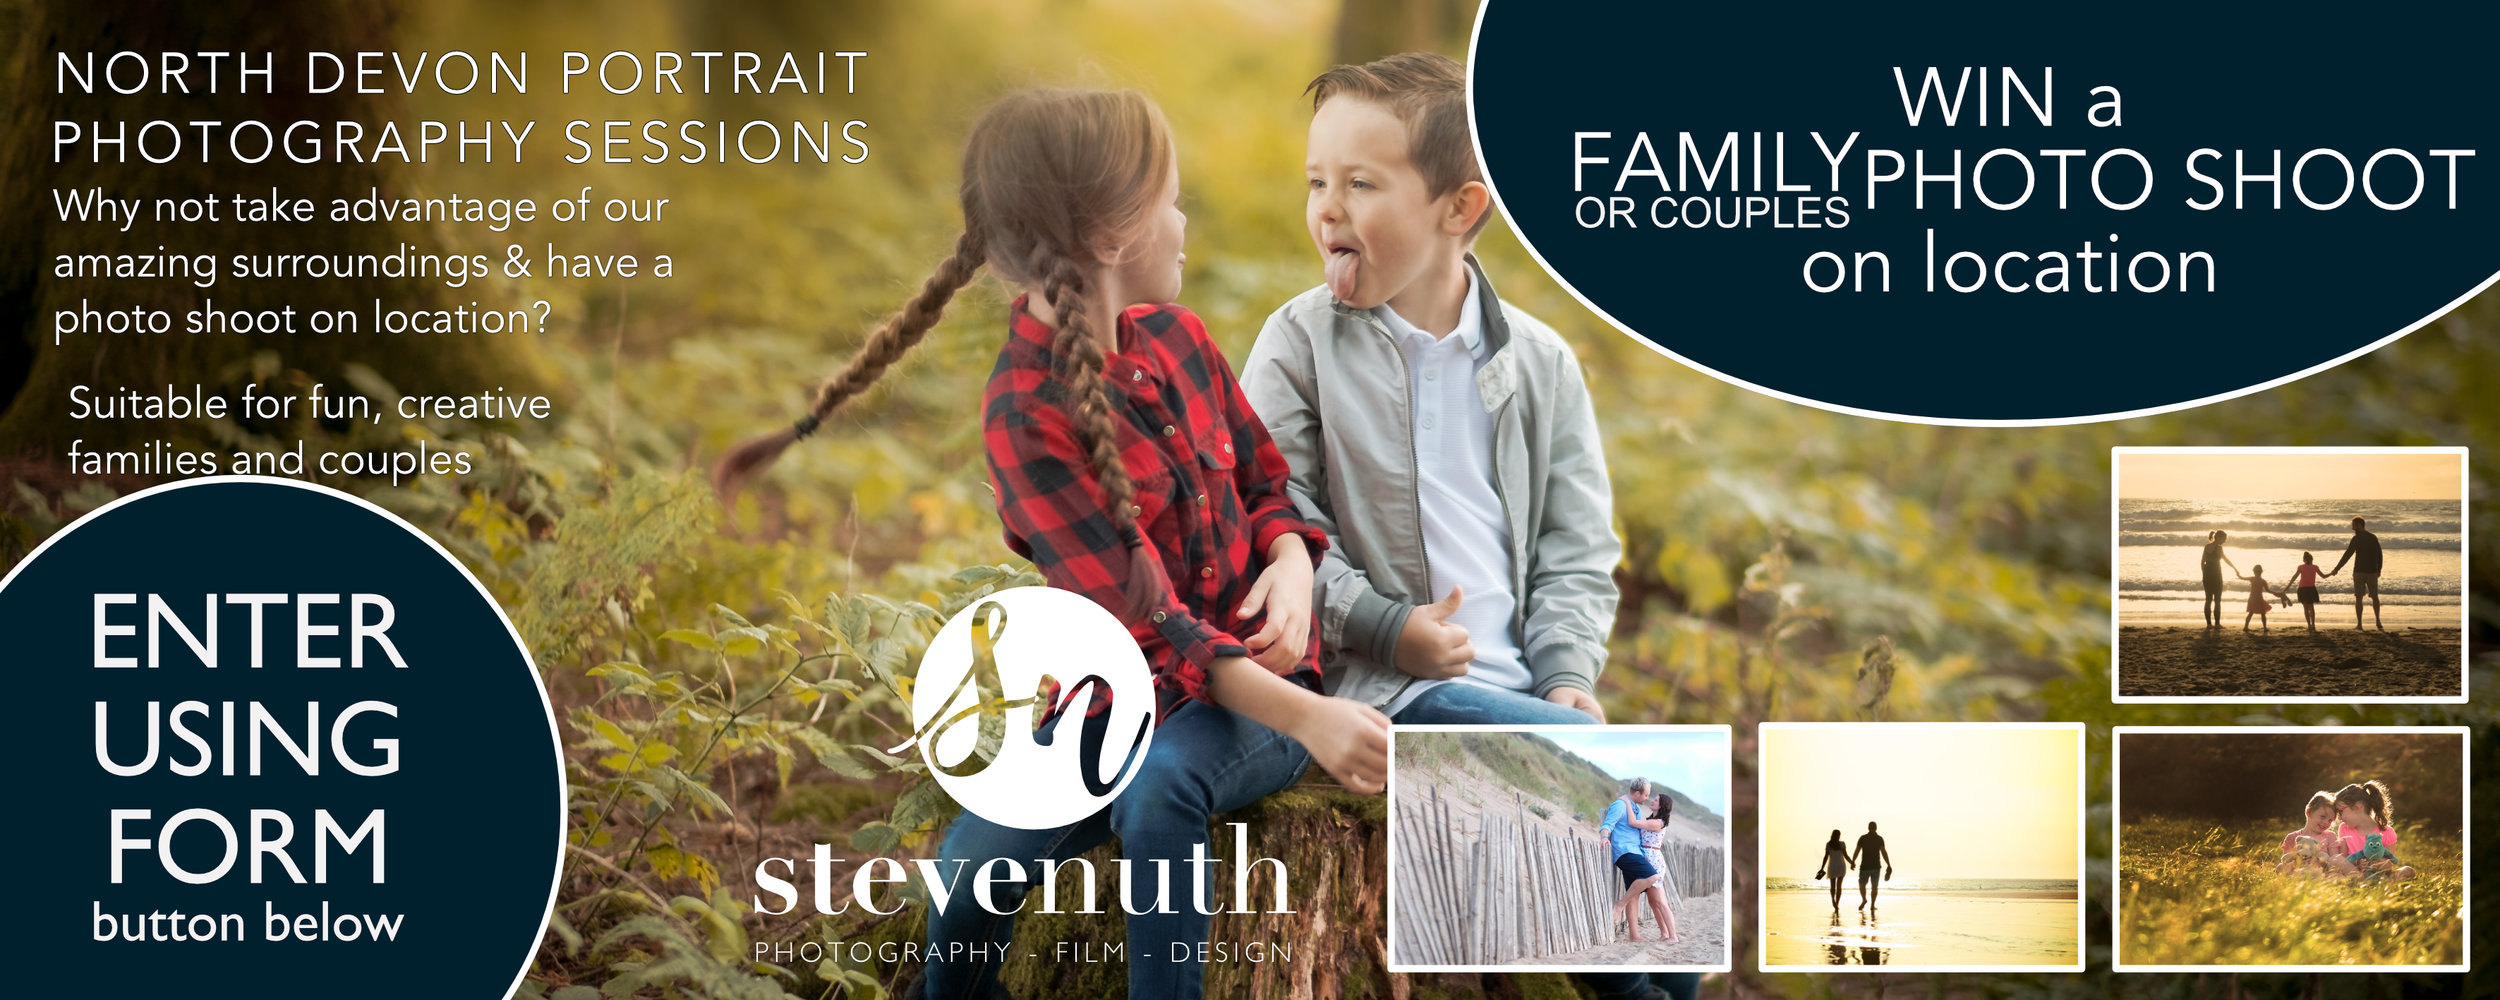 Family location banner ad.jpg